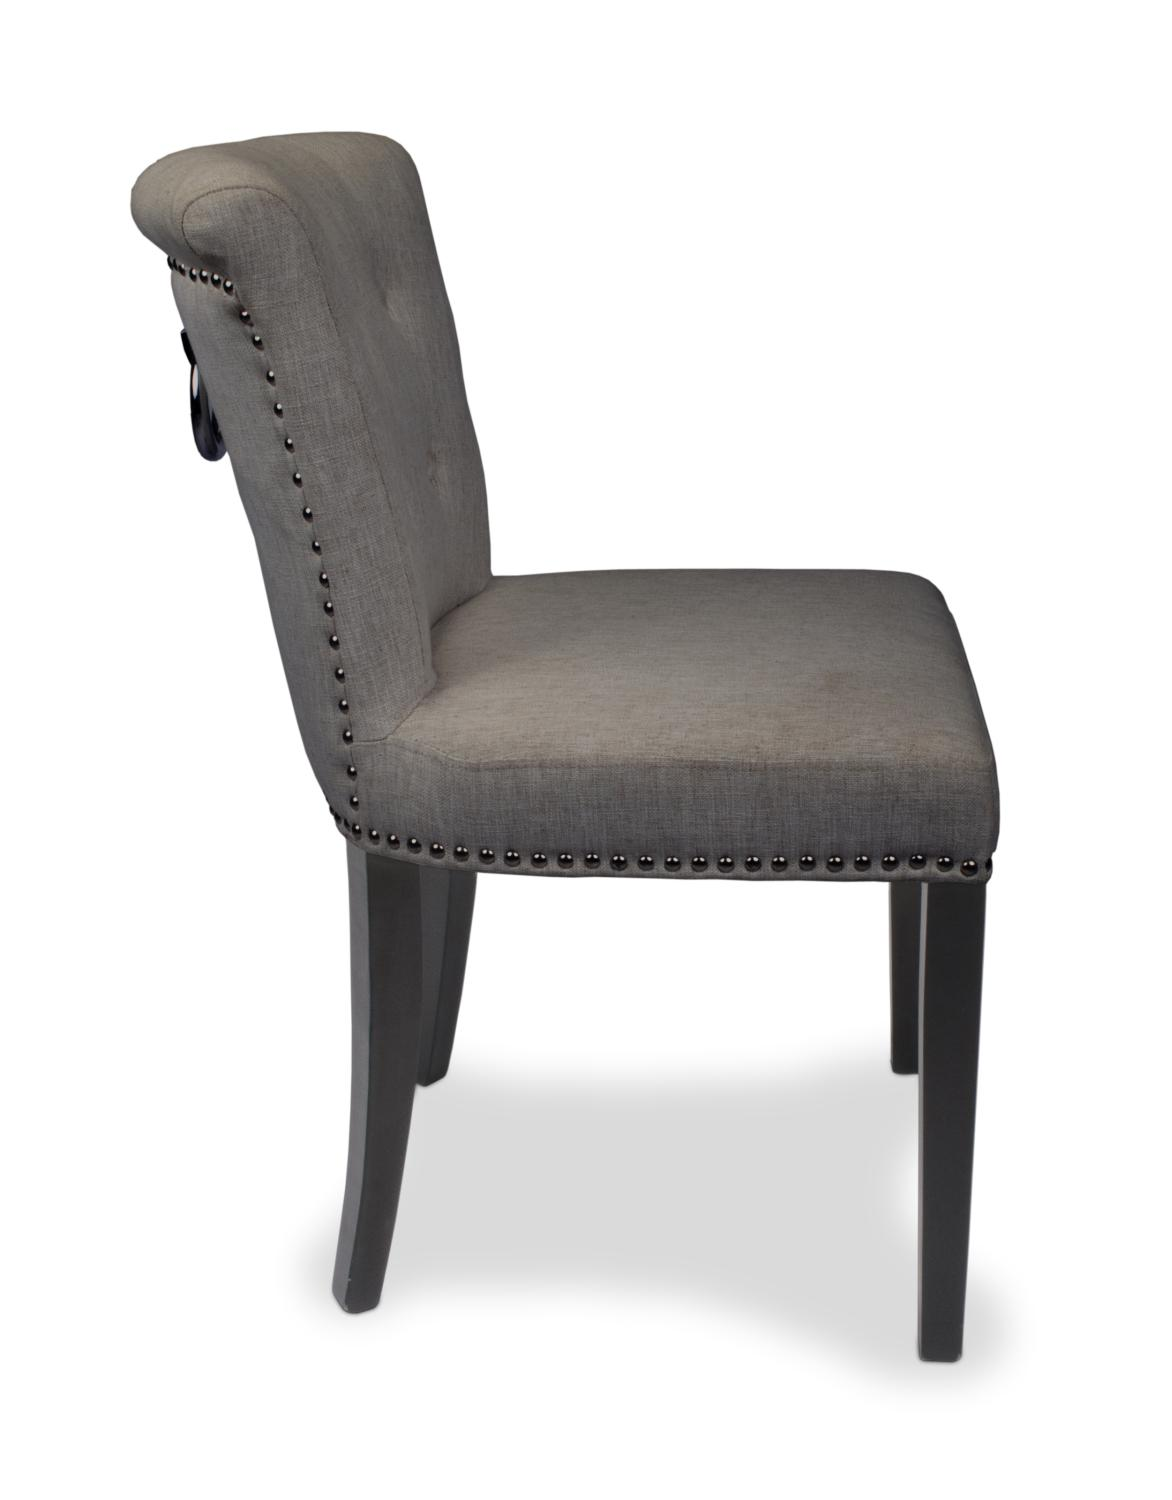 Dining Chairs With Handles On Back Regal Plush Grey Linen Style Upholstered Dining Or Accent